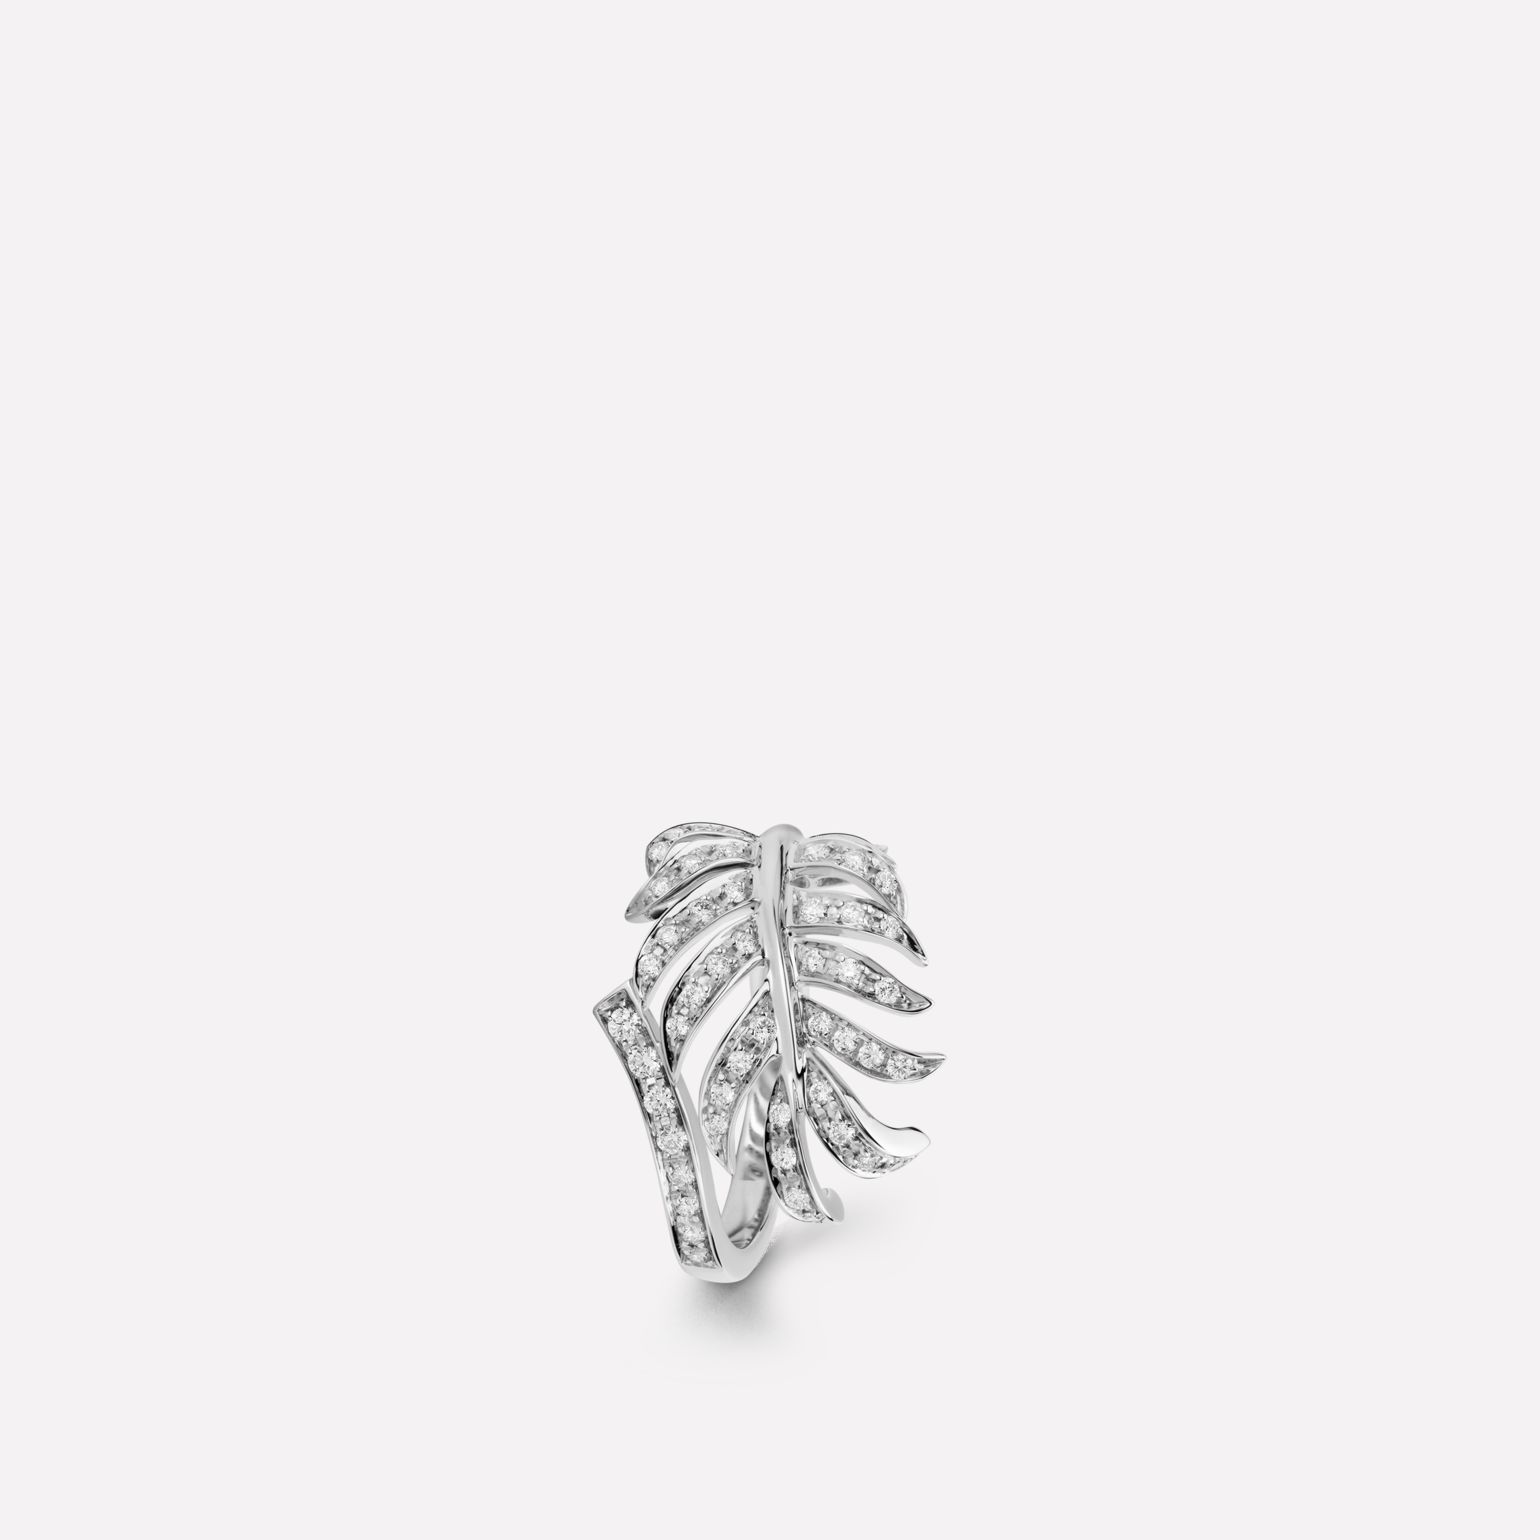 Bague Plume de CHANEL Motif plume en or blanc 18 carats et diamants